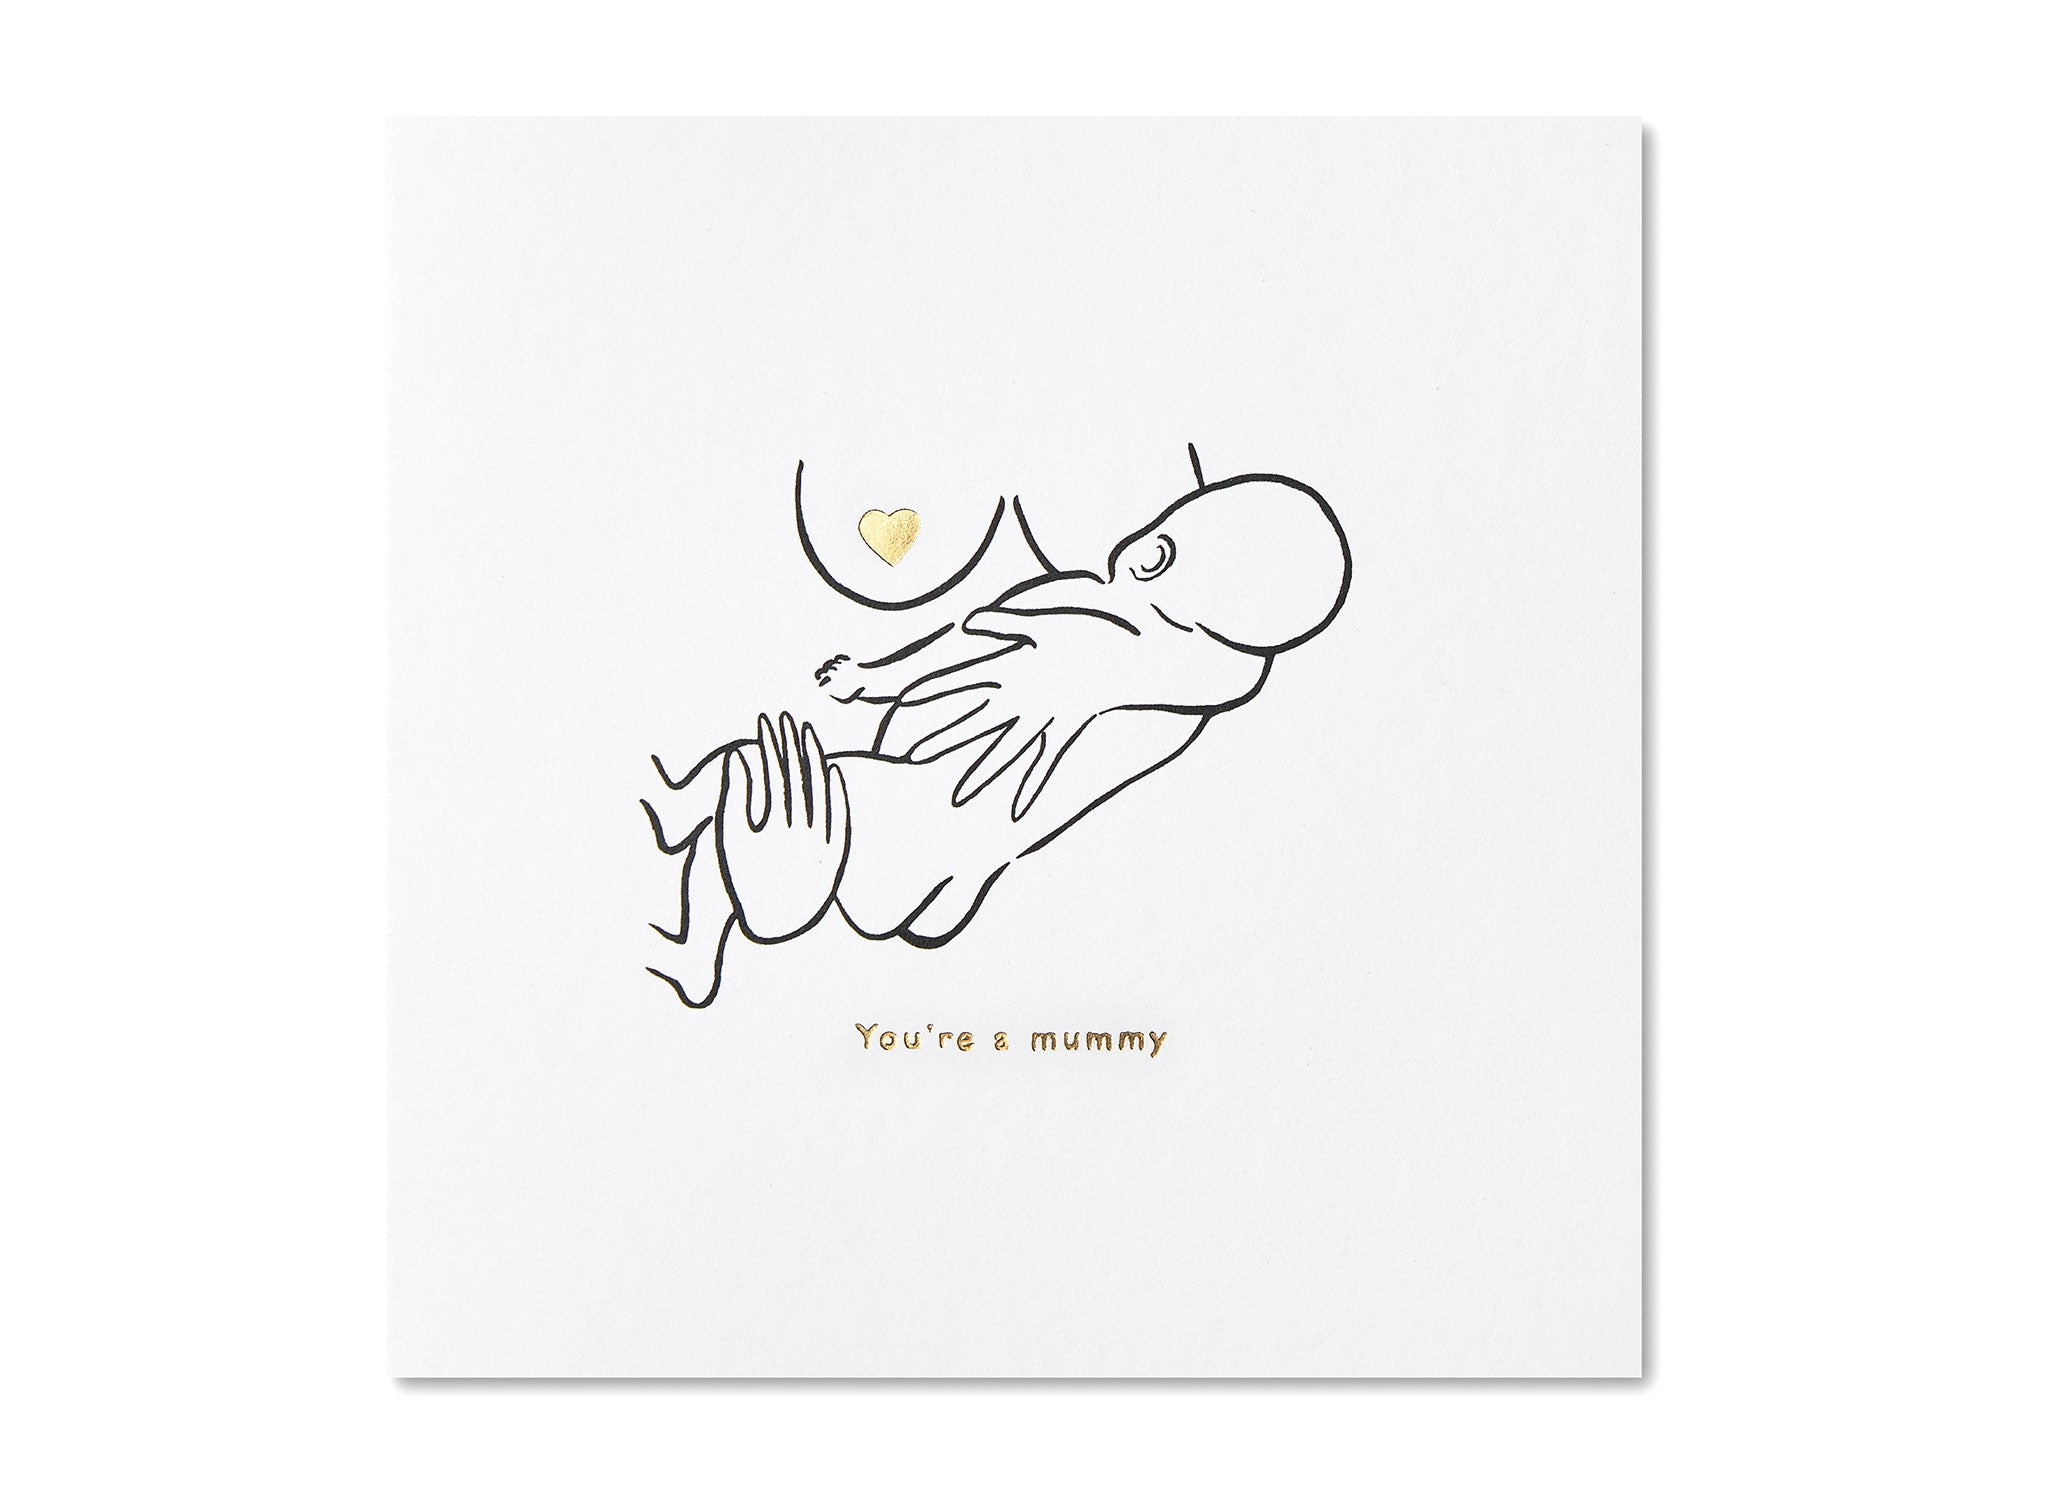 Jo Laing - New Mummy Greeting Card - luxury stationery made in England